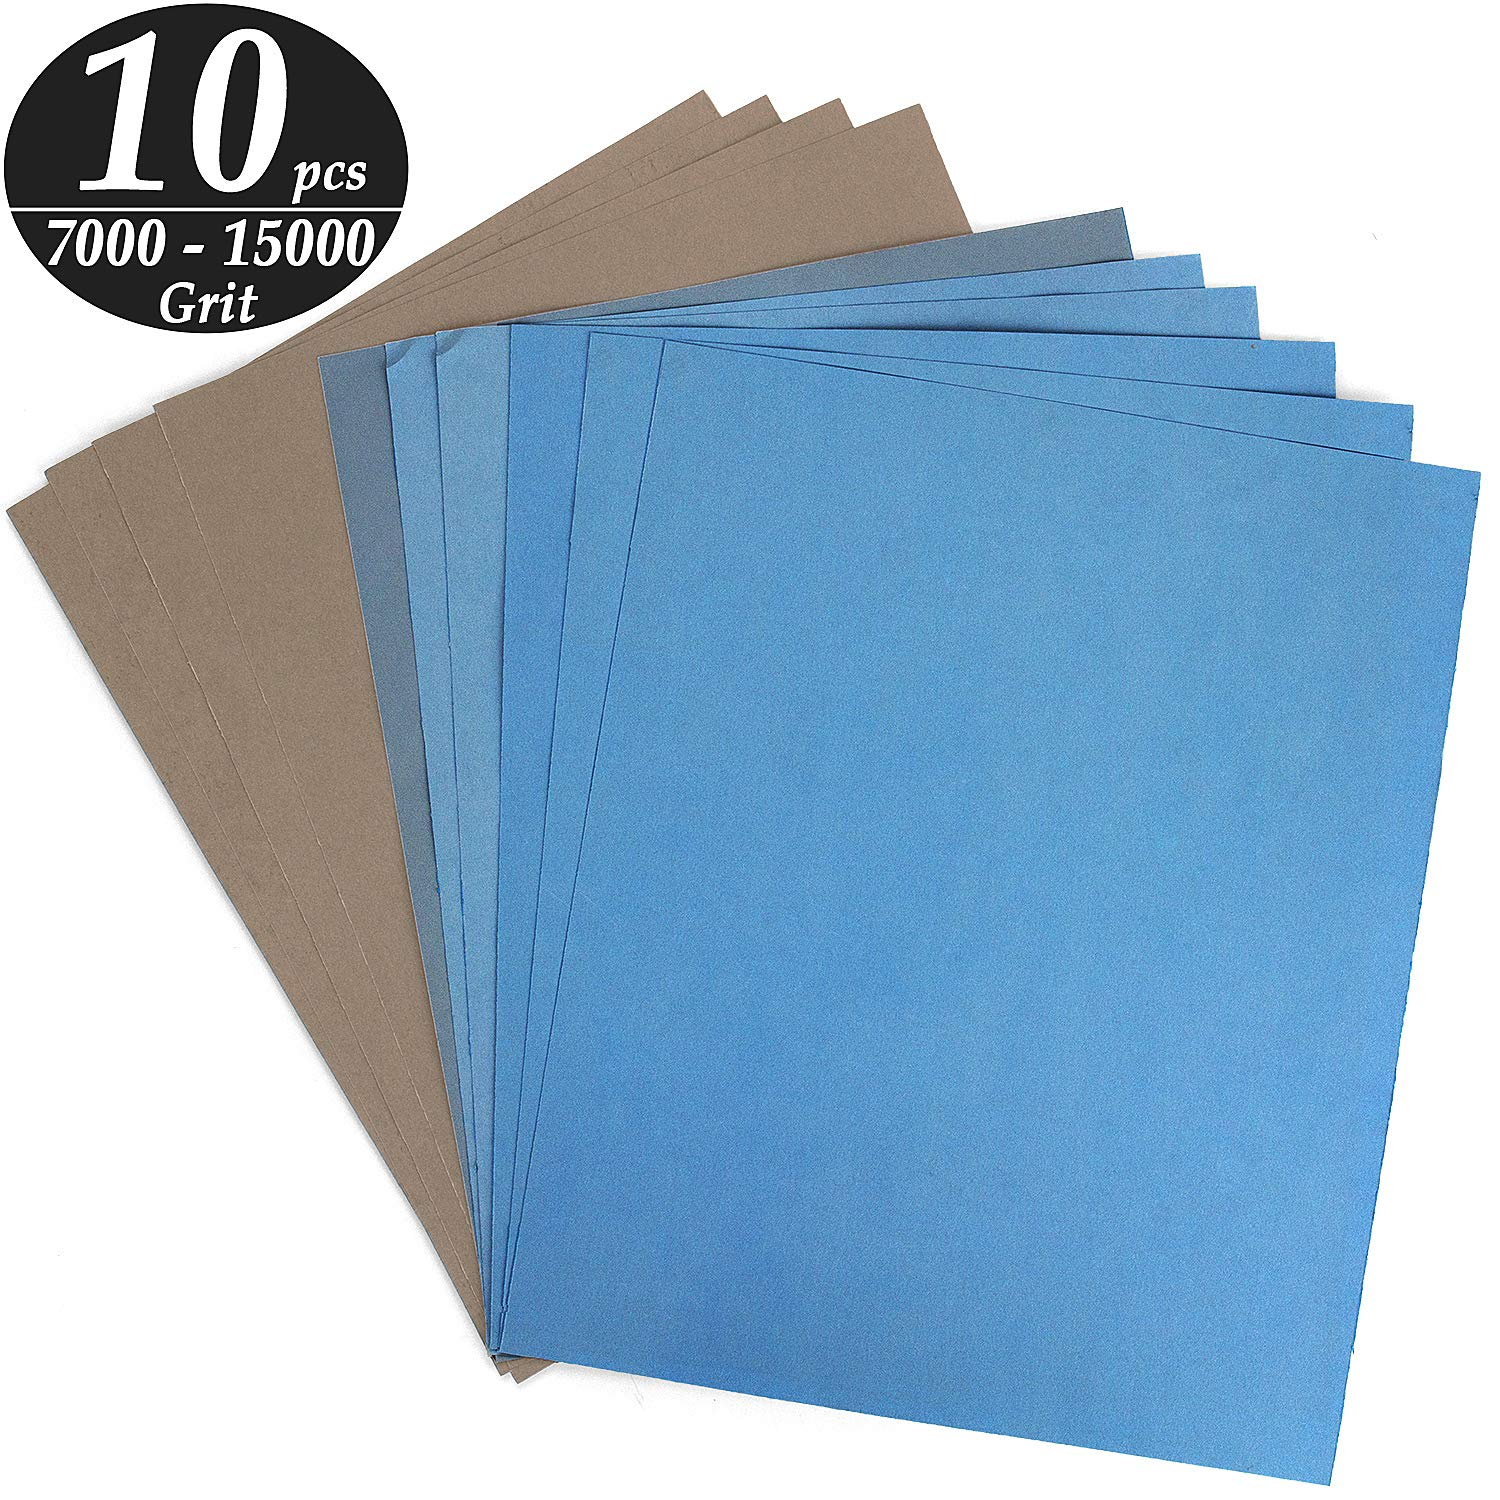 ADVcer 9x11 inch 10 Sheets Sandpaper, Wet or Dry 7000-15000 Grit 5 Assortment Sand Paper, Super Fine Precision Abrasive Pads for Automotive Sanding, Wood Turing Finishing, Metal Furniture Polishing by ADVcer